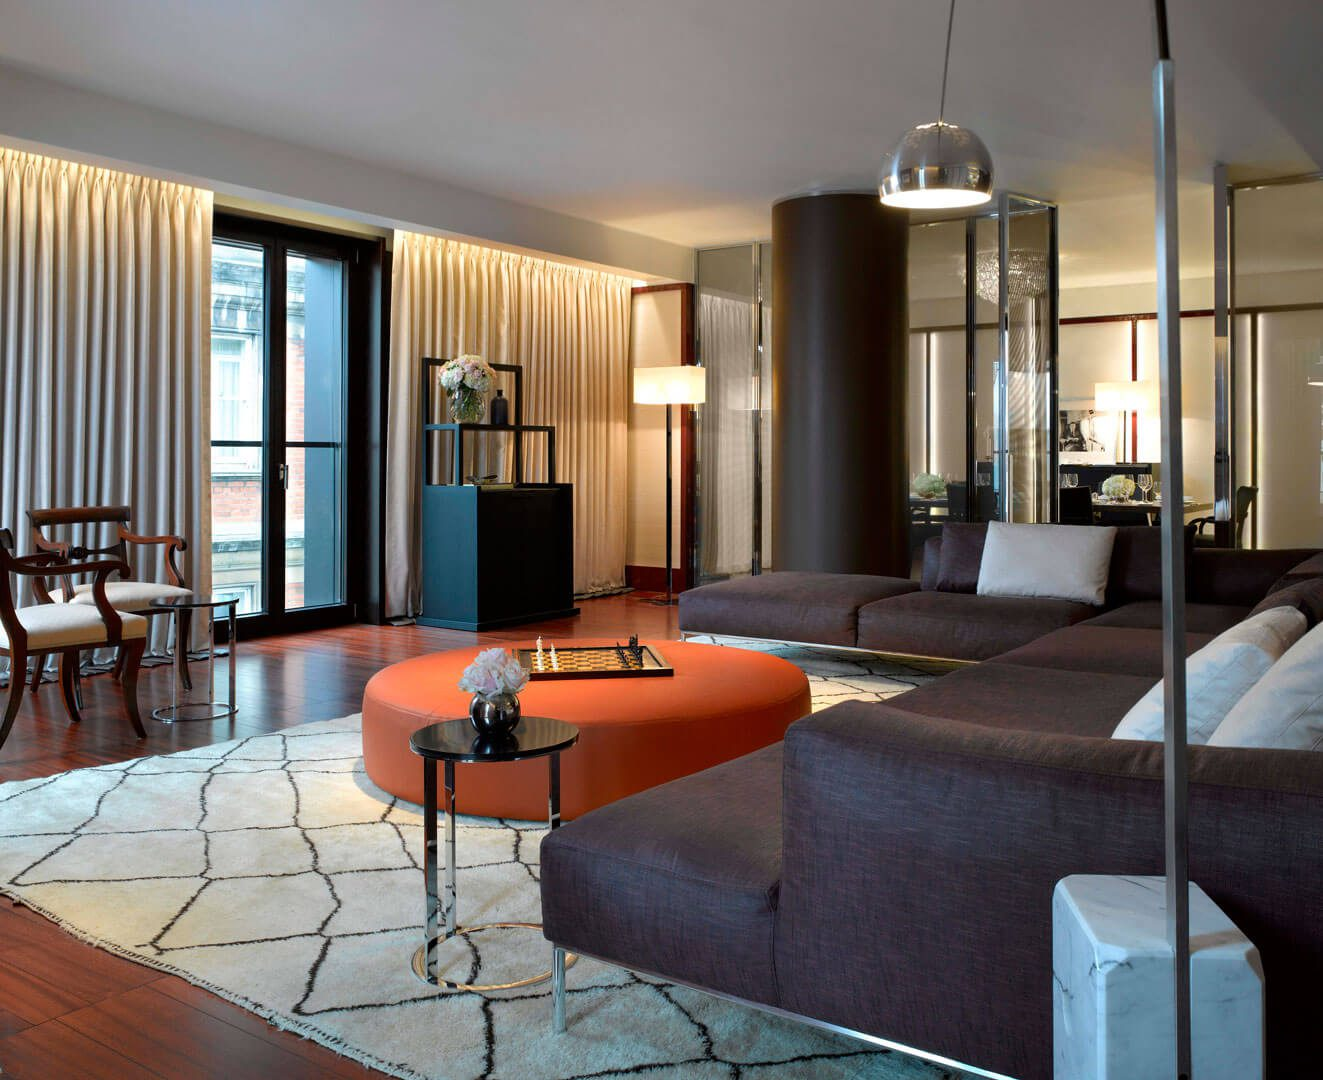 Bulgari Hotel, London – Design By Squire and Partners